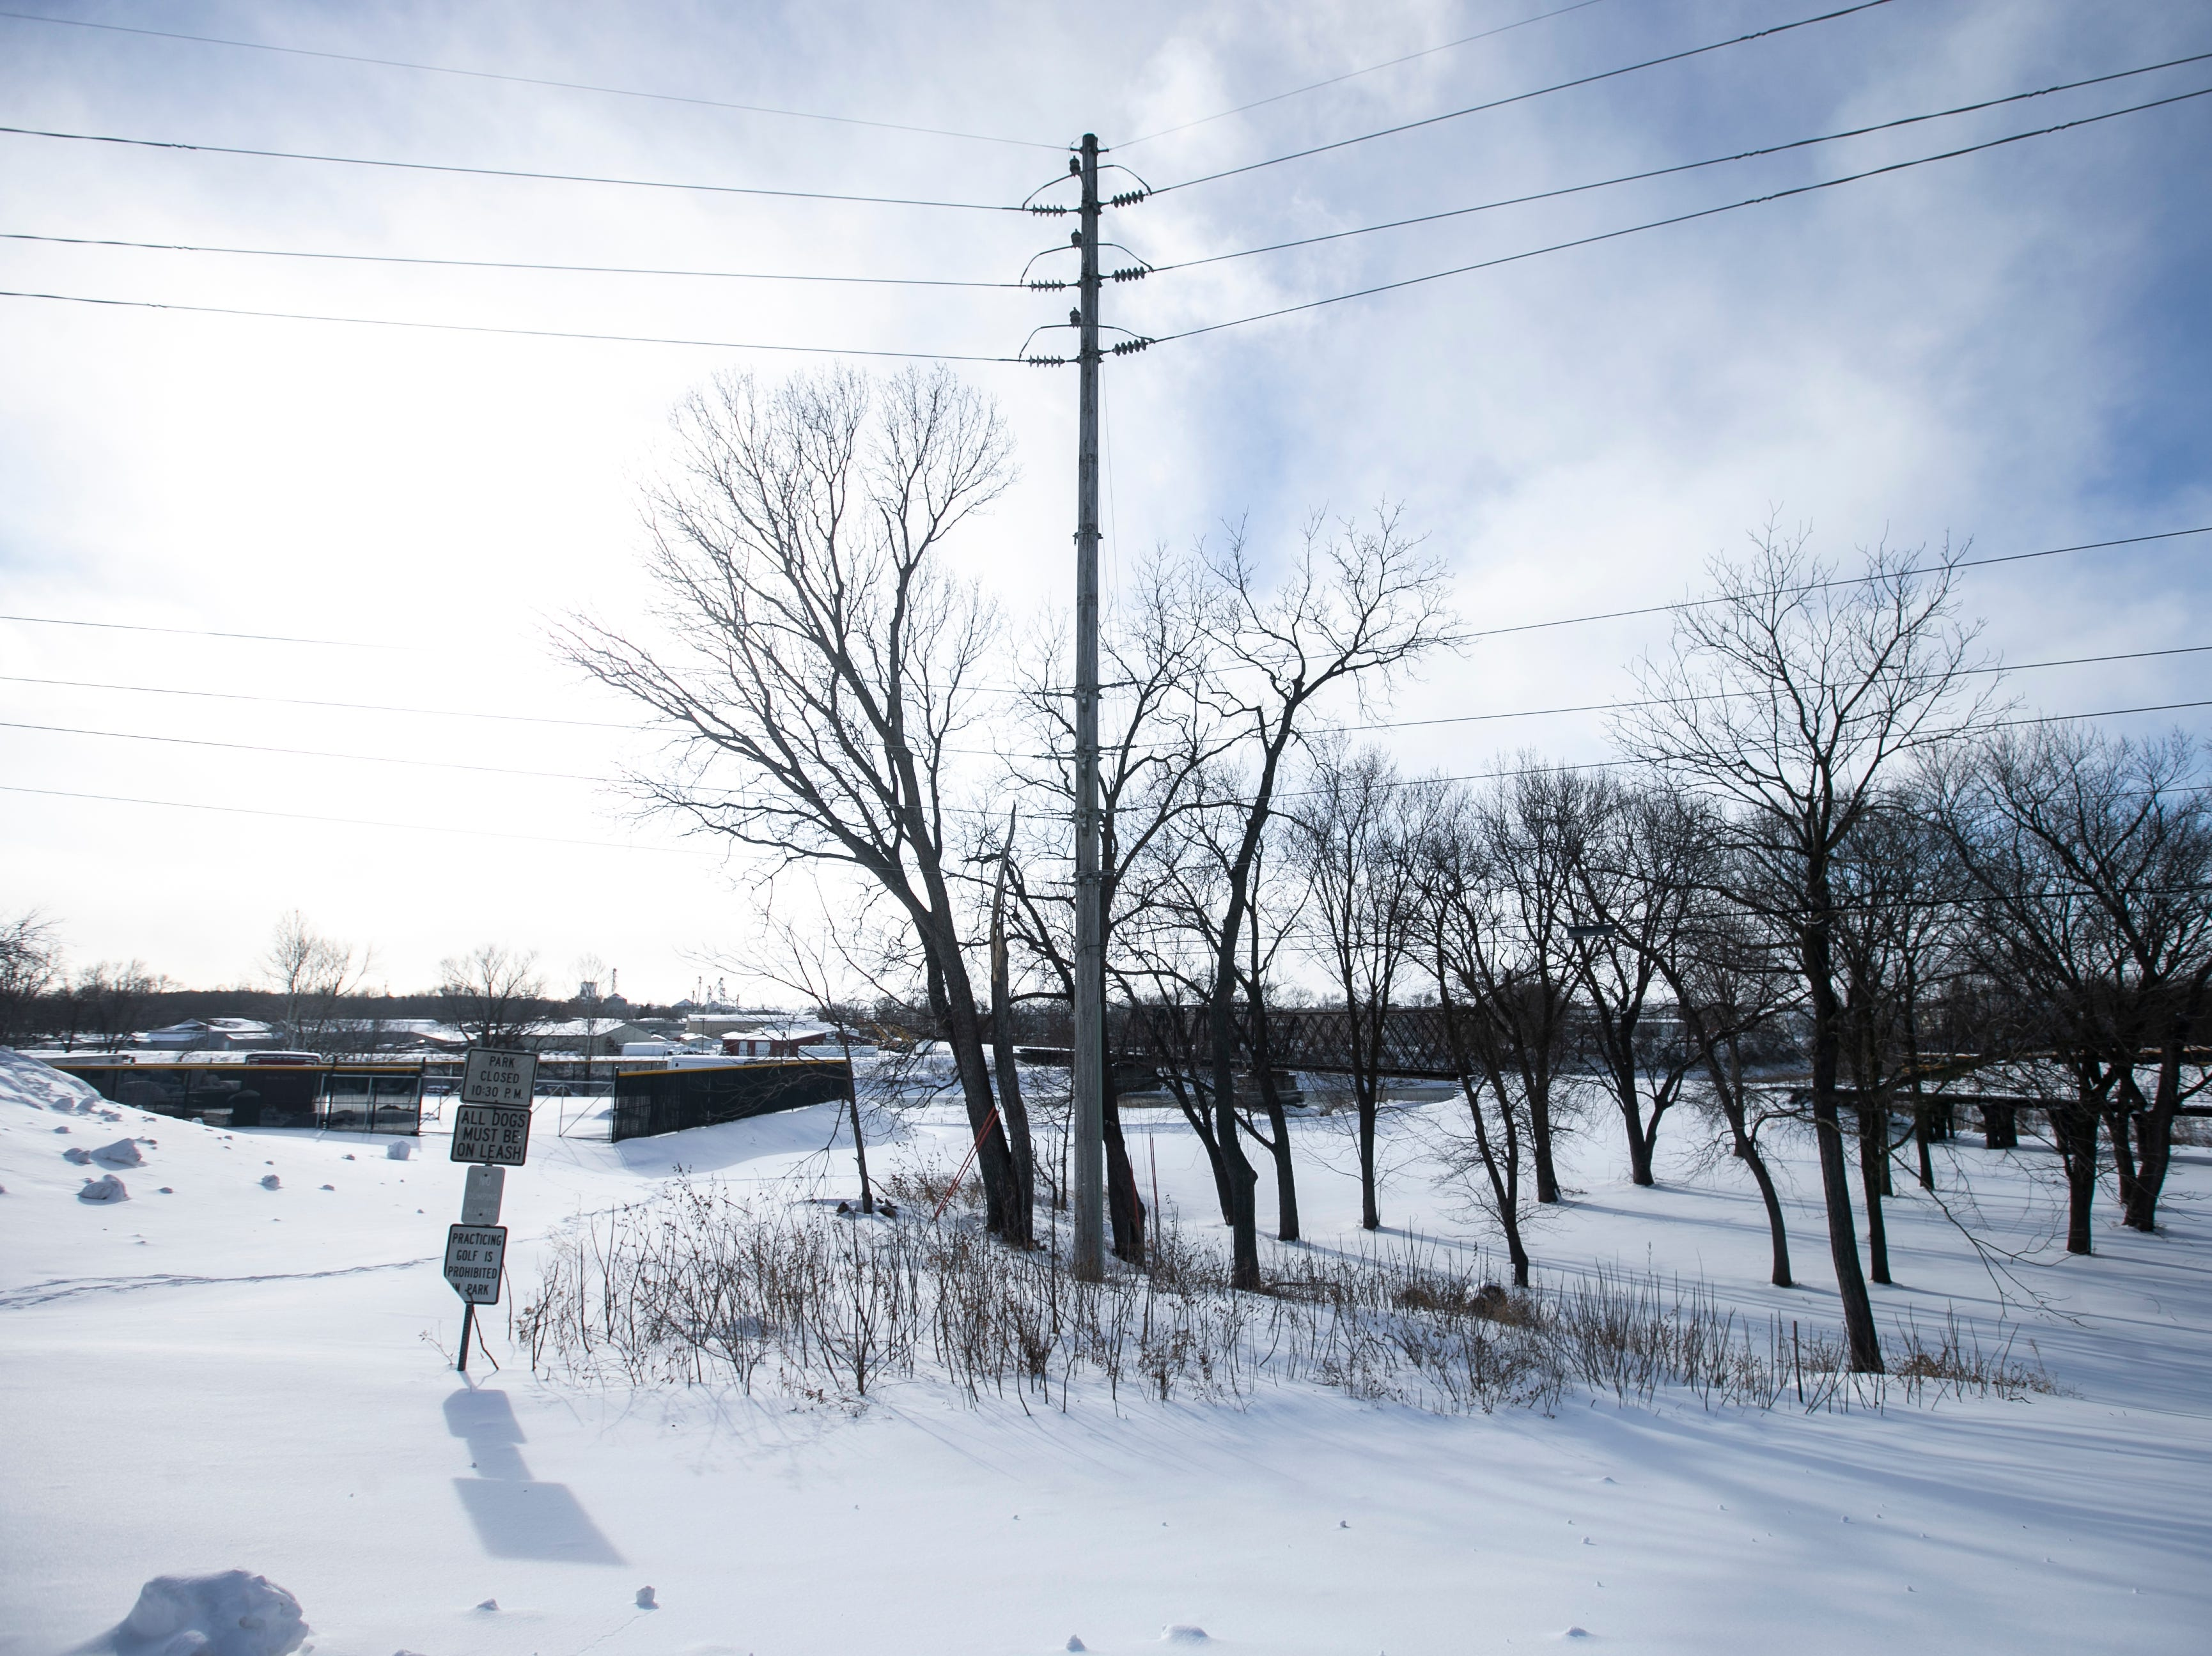 Wind gusts along South Gilbert Street on Tuesday, Jan. 29, 2019, near Napoleon Park in Iowa City, Iowa. Air temperatures are forecasted to plummet more than 30 degrees below zero on Wednesday.